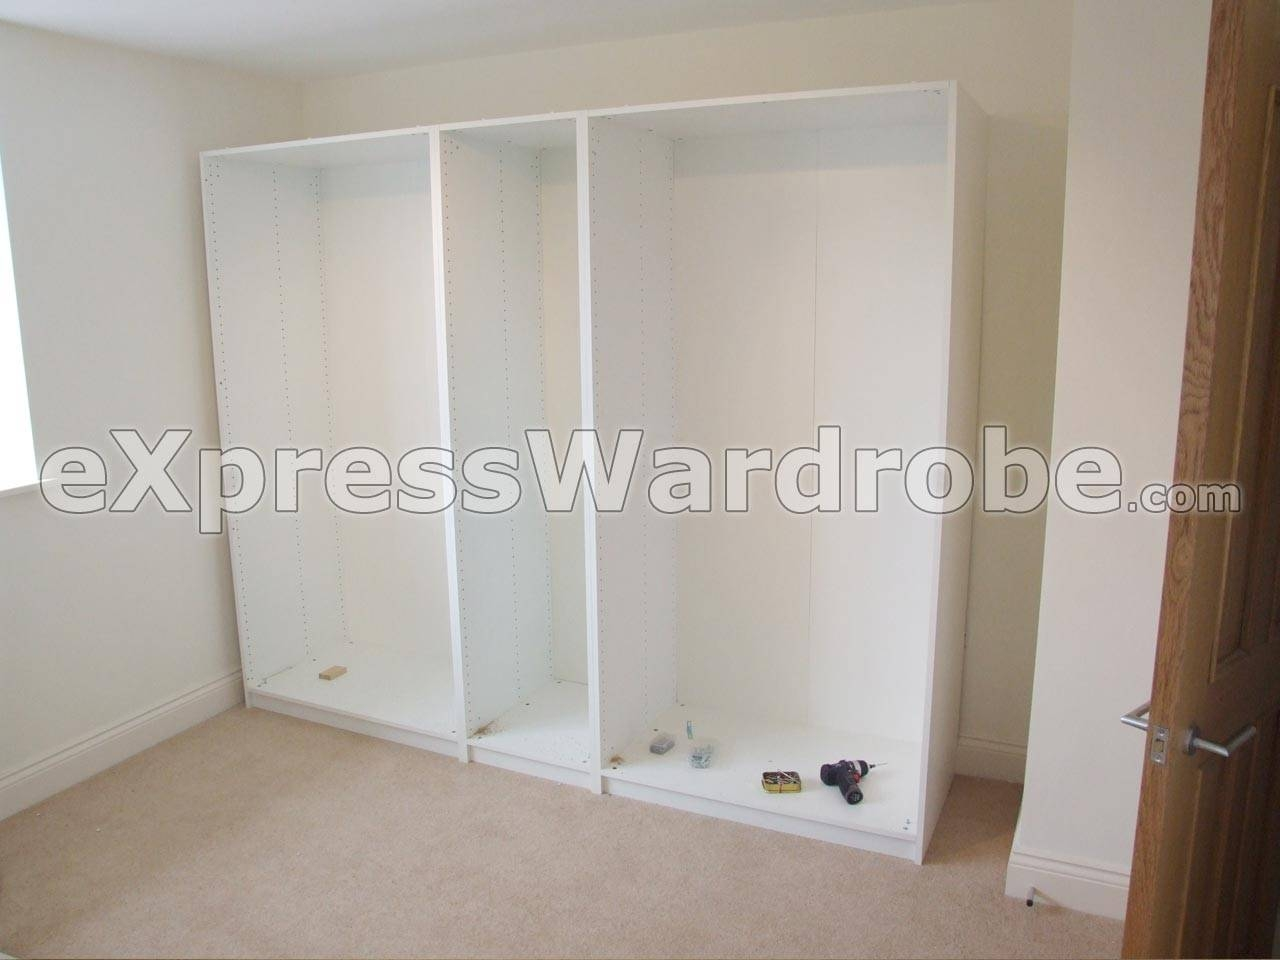 Cheap Fitted Wardrobes | Fitted Bedrooms | Fitted Bedroom within Cheap Bedroom Wardrobes (Image 9 of 15)